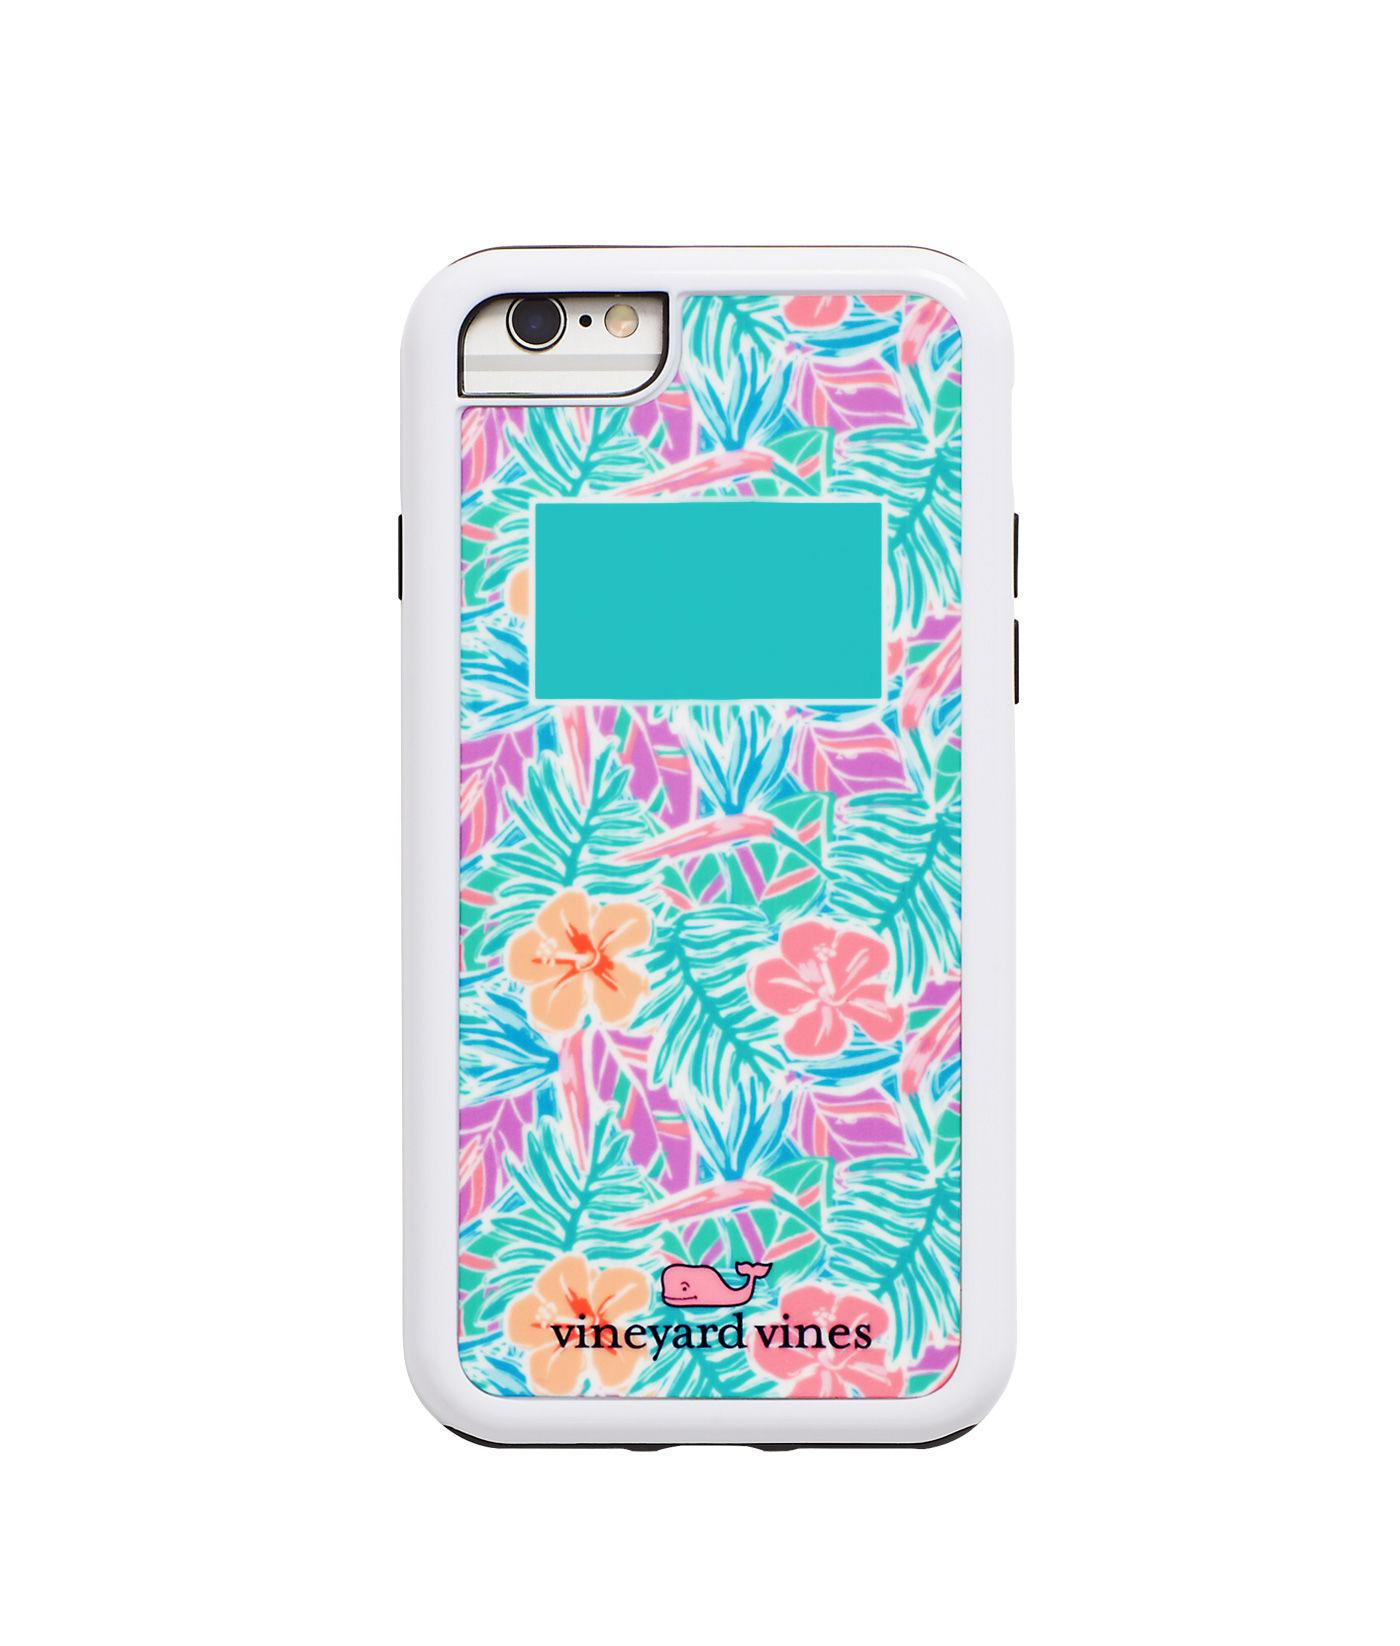 new style 45b54 a344a Vineyard Vines Vineyard Whale Iphone 7 / 8 Plus Case in Blue - Lyst